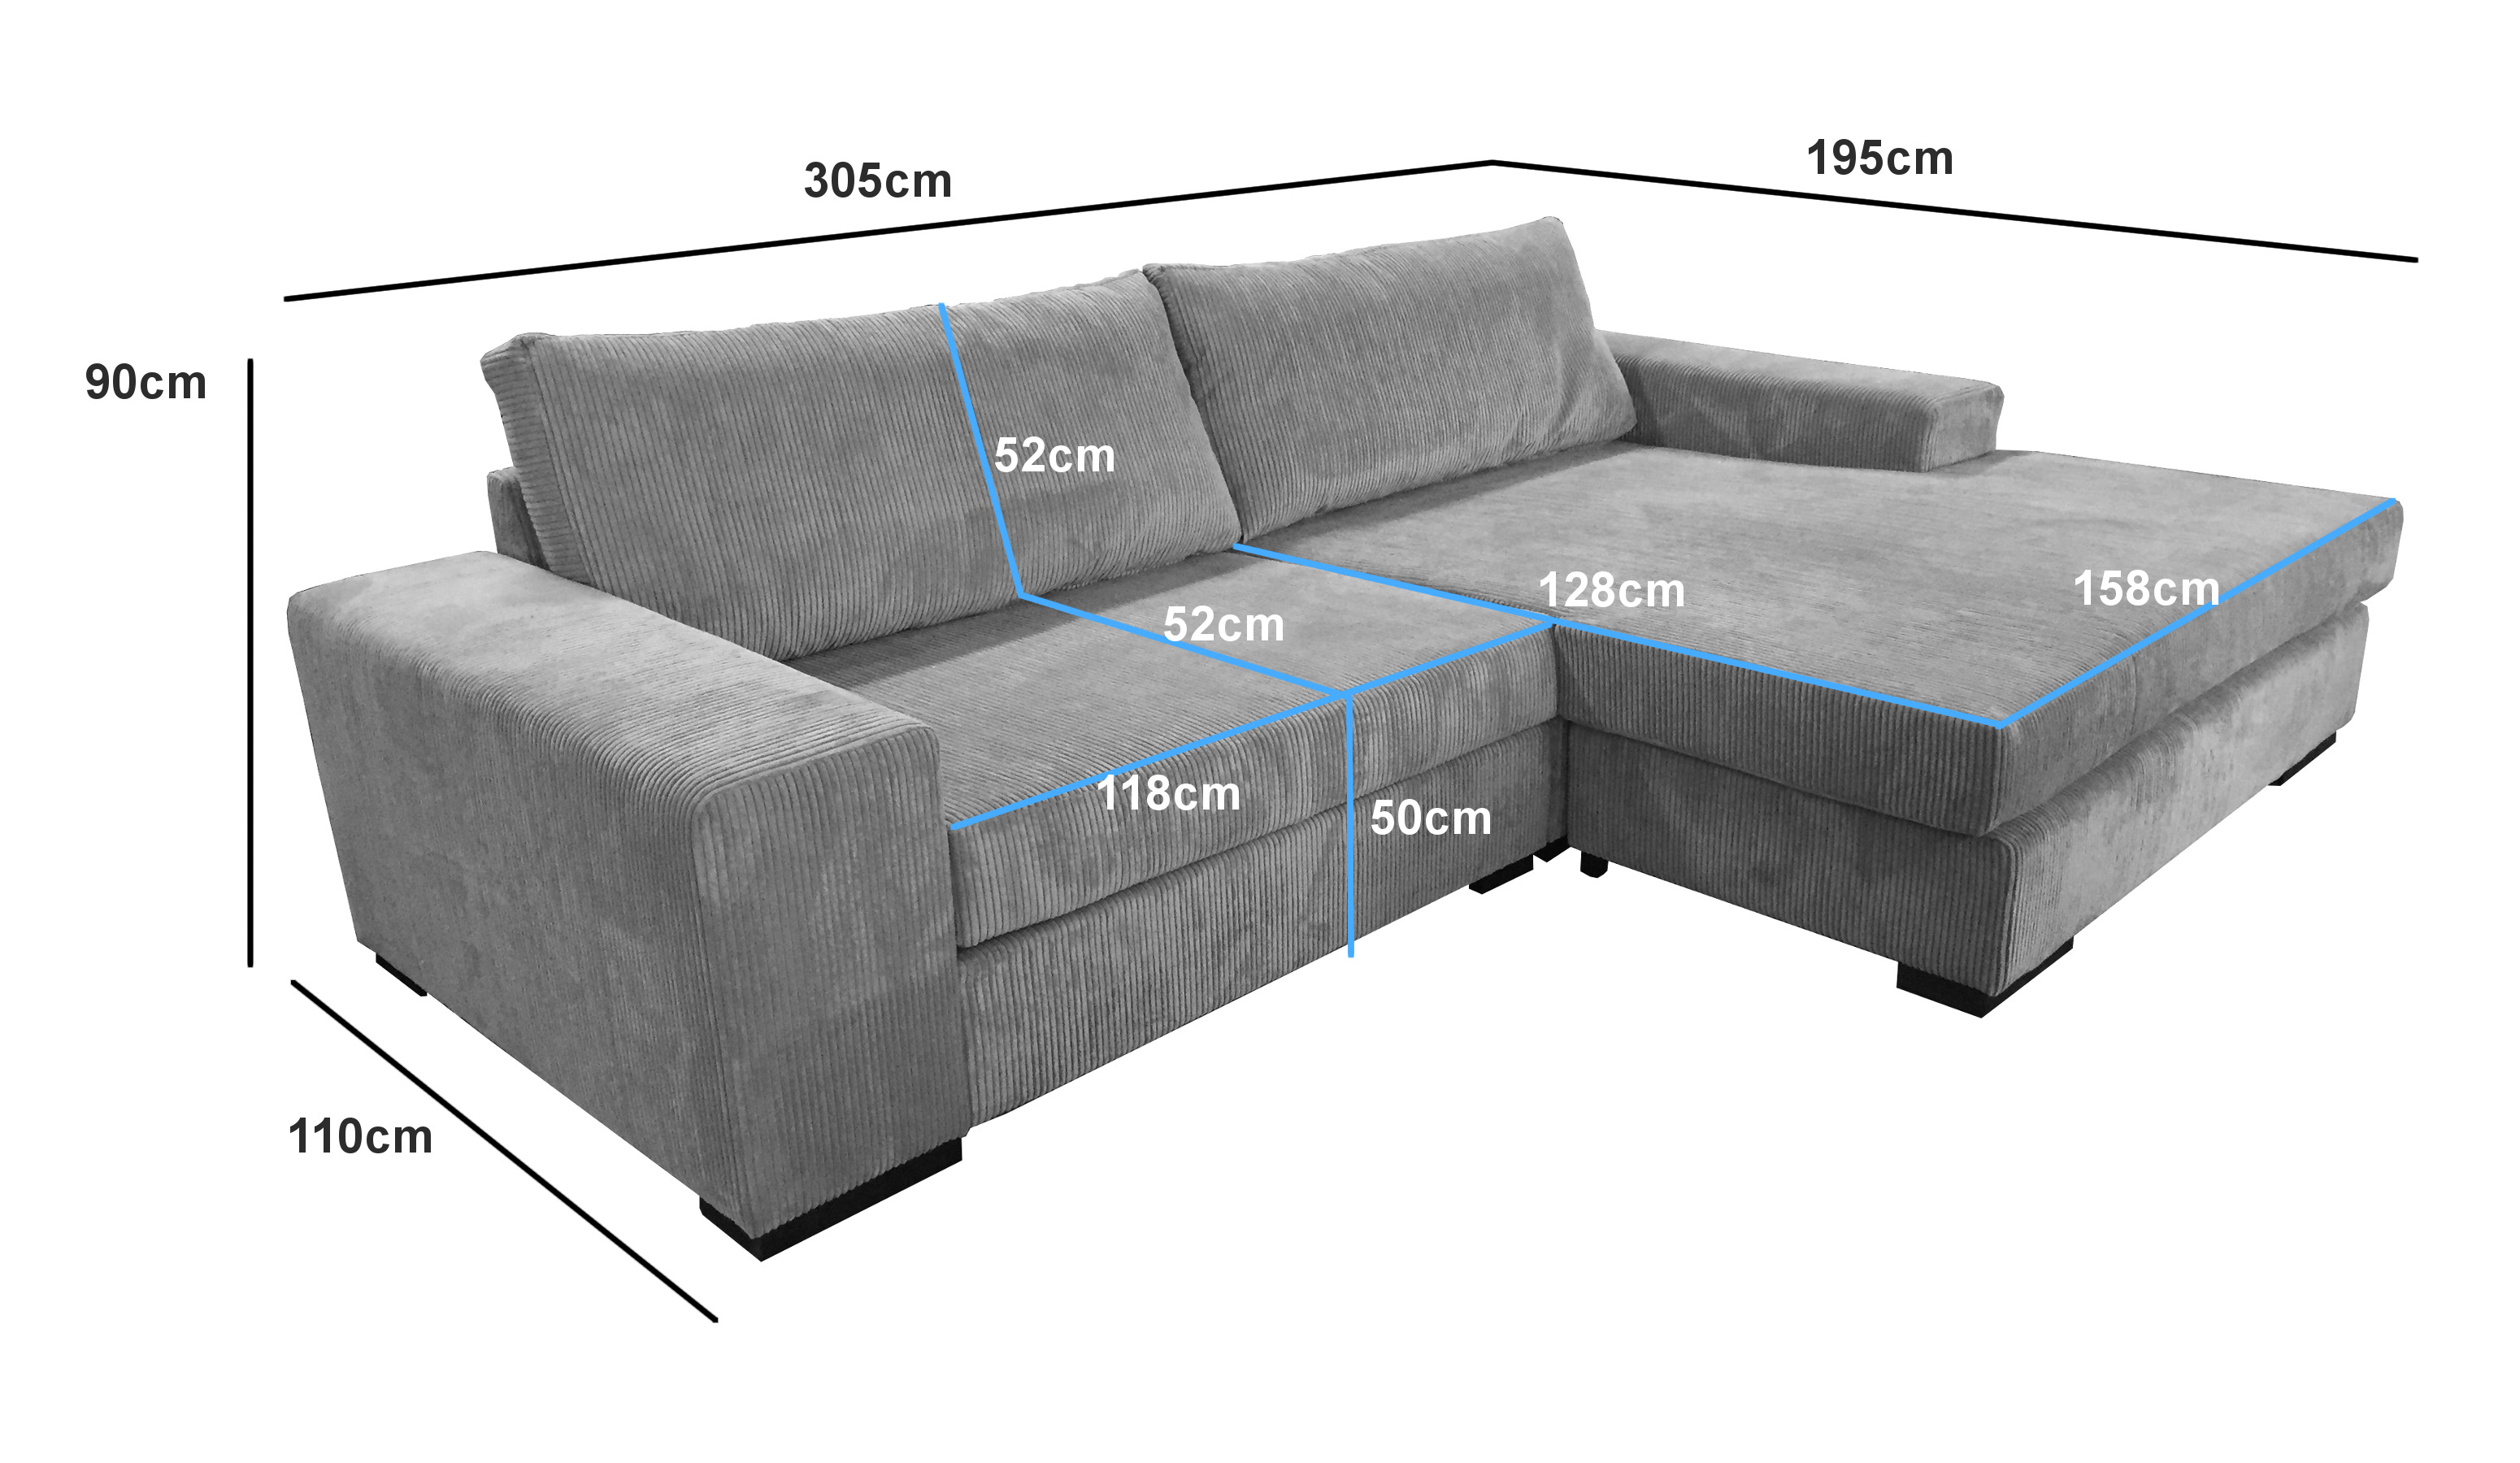 Ecksofa sofa eckcouch couch ottomane l form wohnlandschaft for Sofa l form grau